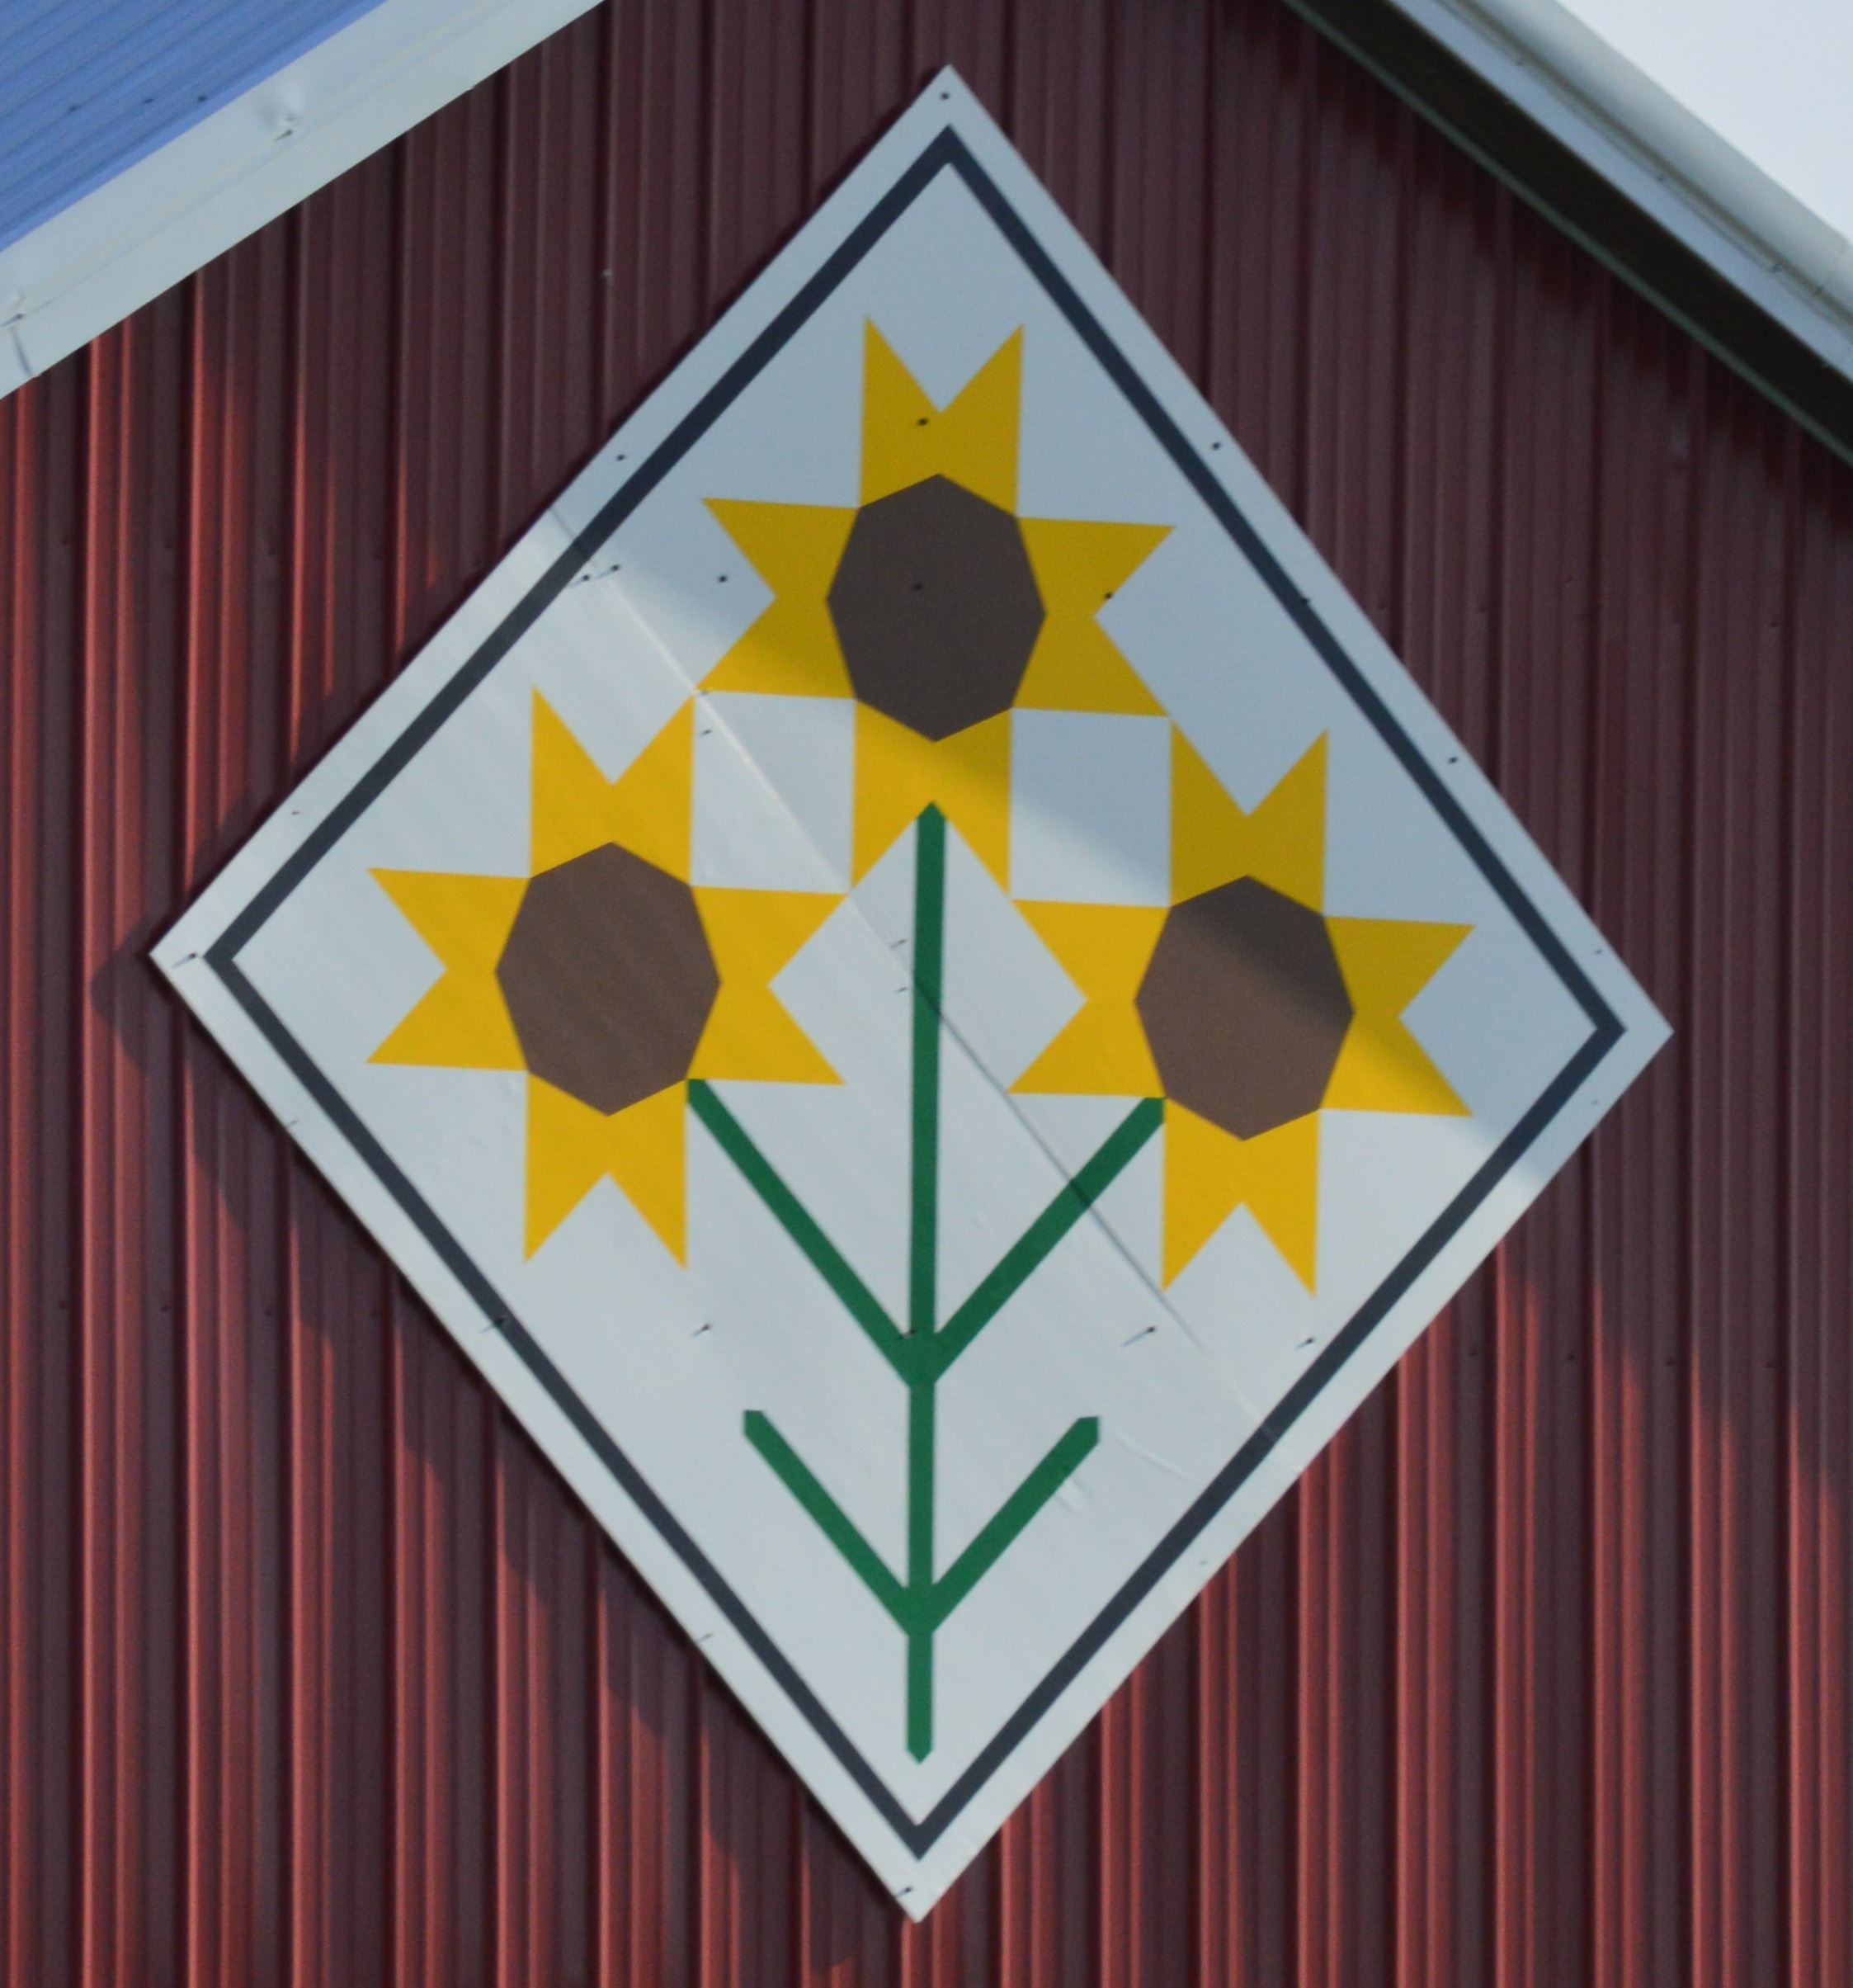 Barn quilt in a diamond shape on the side of a red barn. Pattern is of three sunflowers with a white